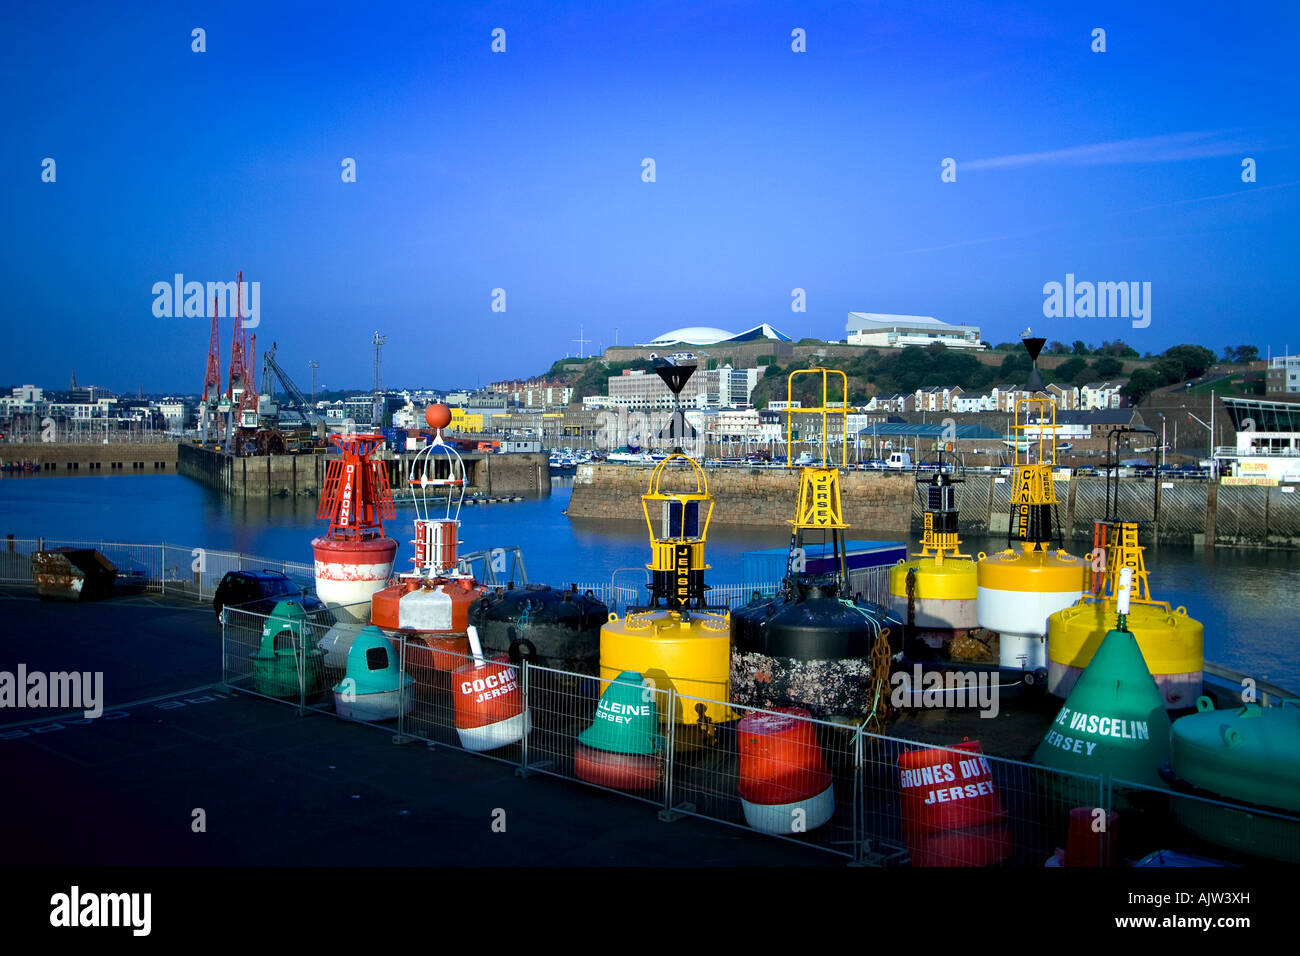 98af472a782b View of Navigation Buoys in foreground, and St. Helier Harbour Port in  background with Fort Regent above.